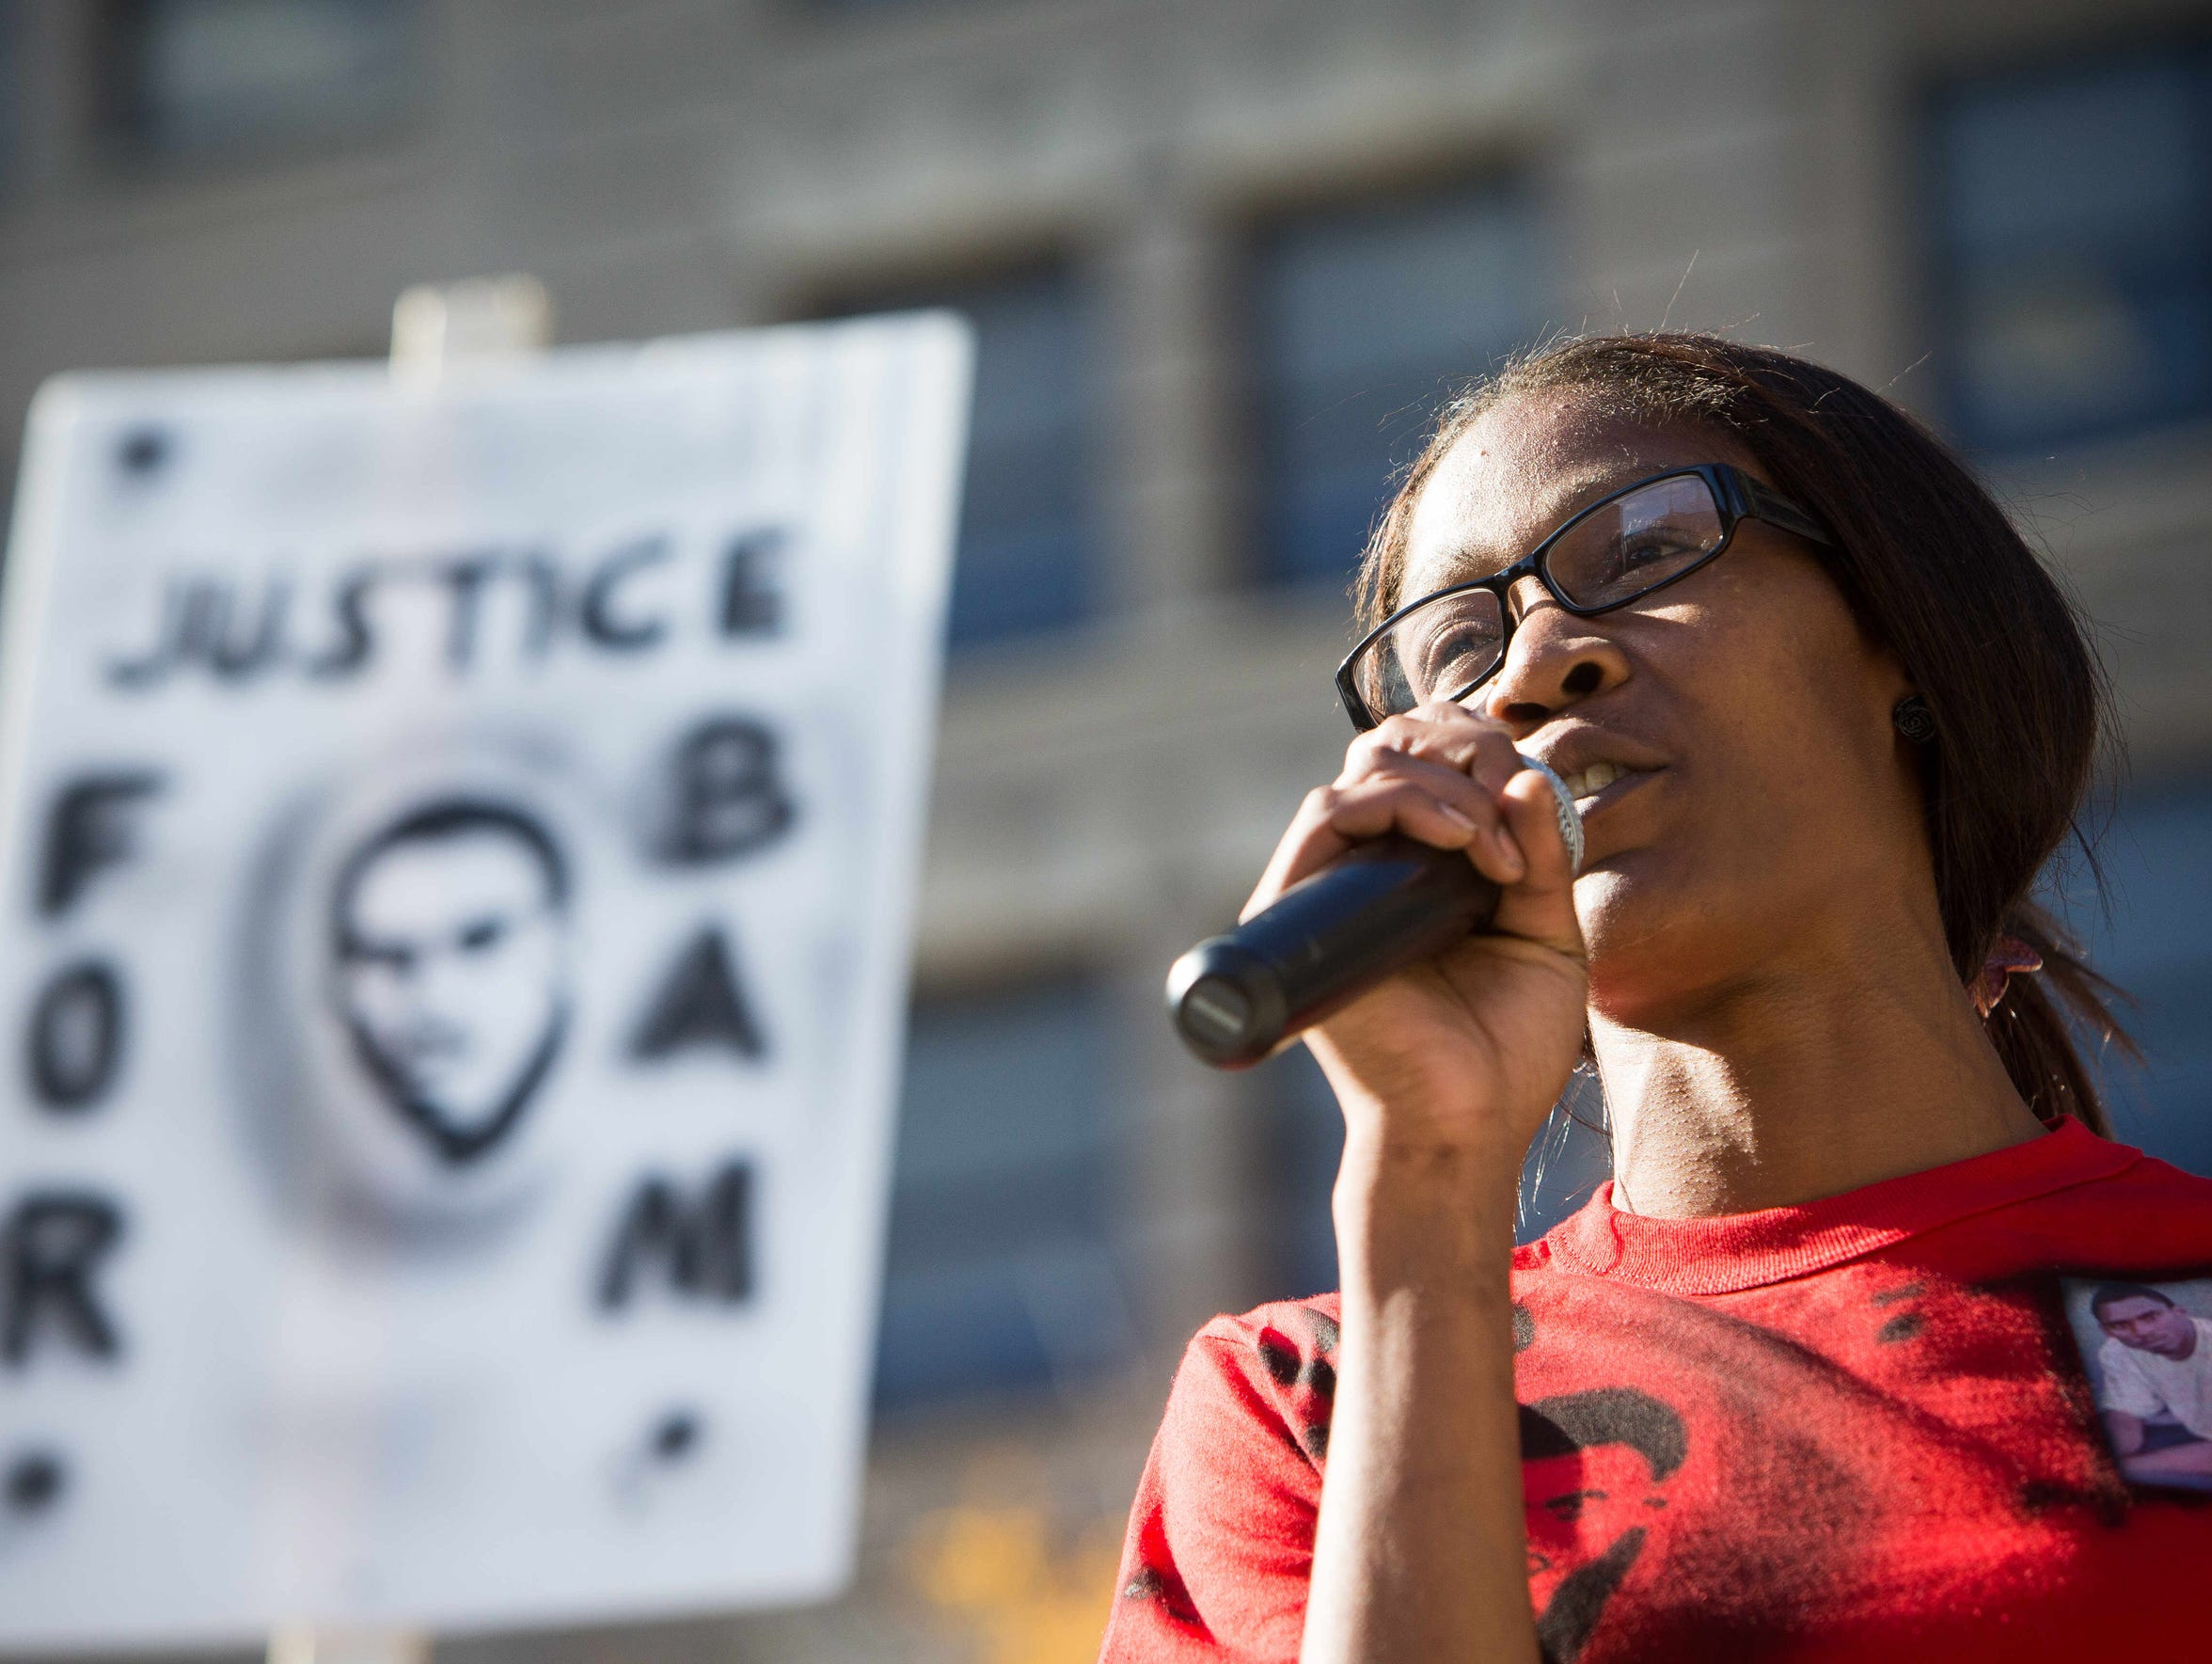 Keandra McDole, Jeremy McDole's sister, speaks at a